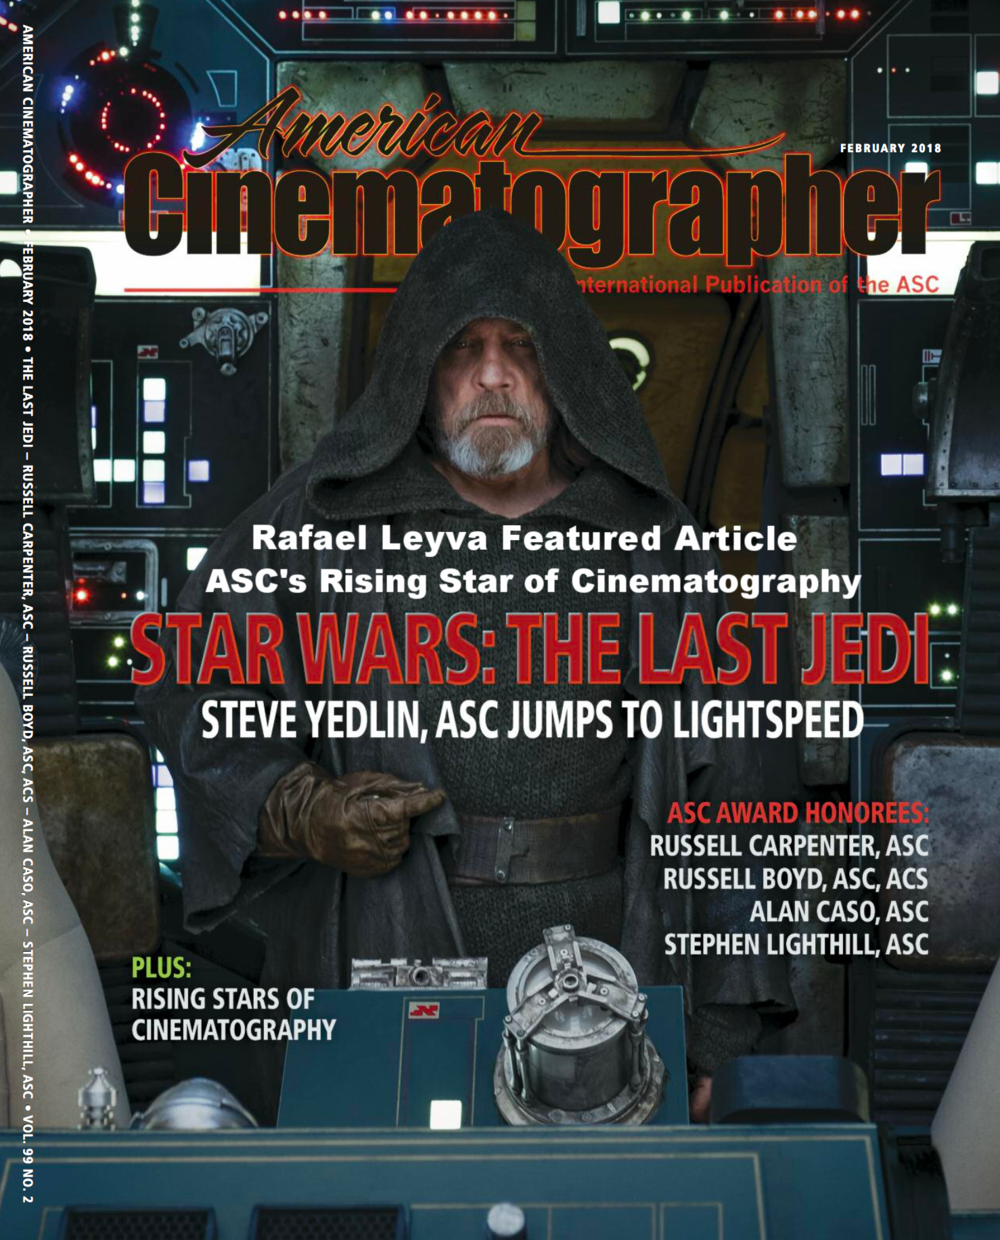 FEBRUARY ISSUE 2018 - ASC'S RISING STARS OF CINEMATOGRAPHY - RAFAEL LEYVA